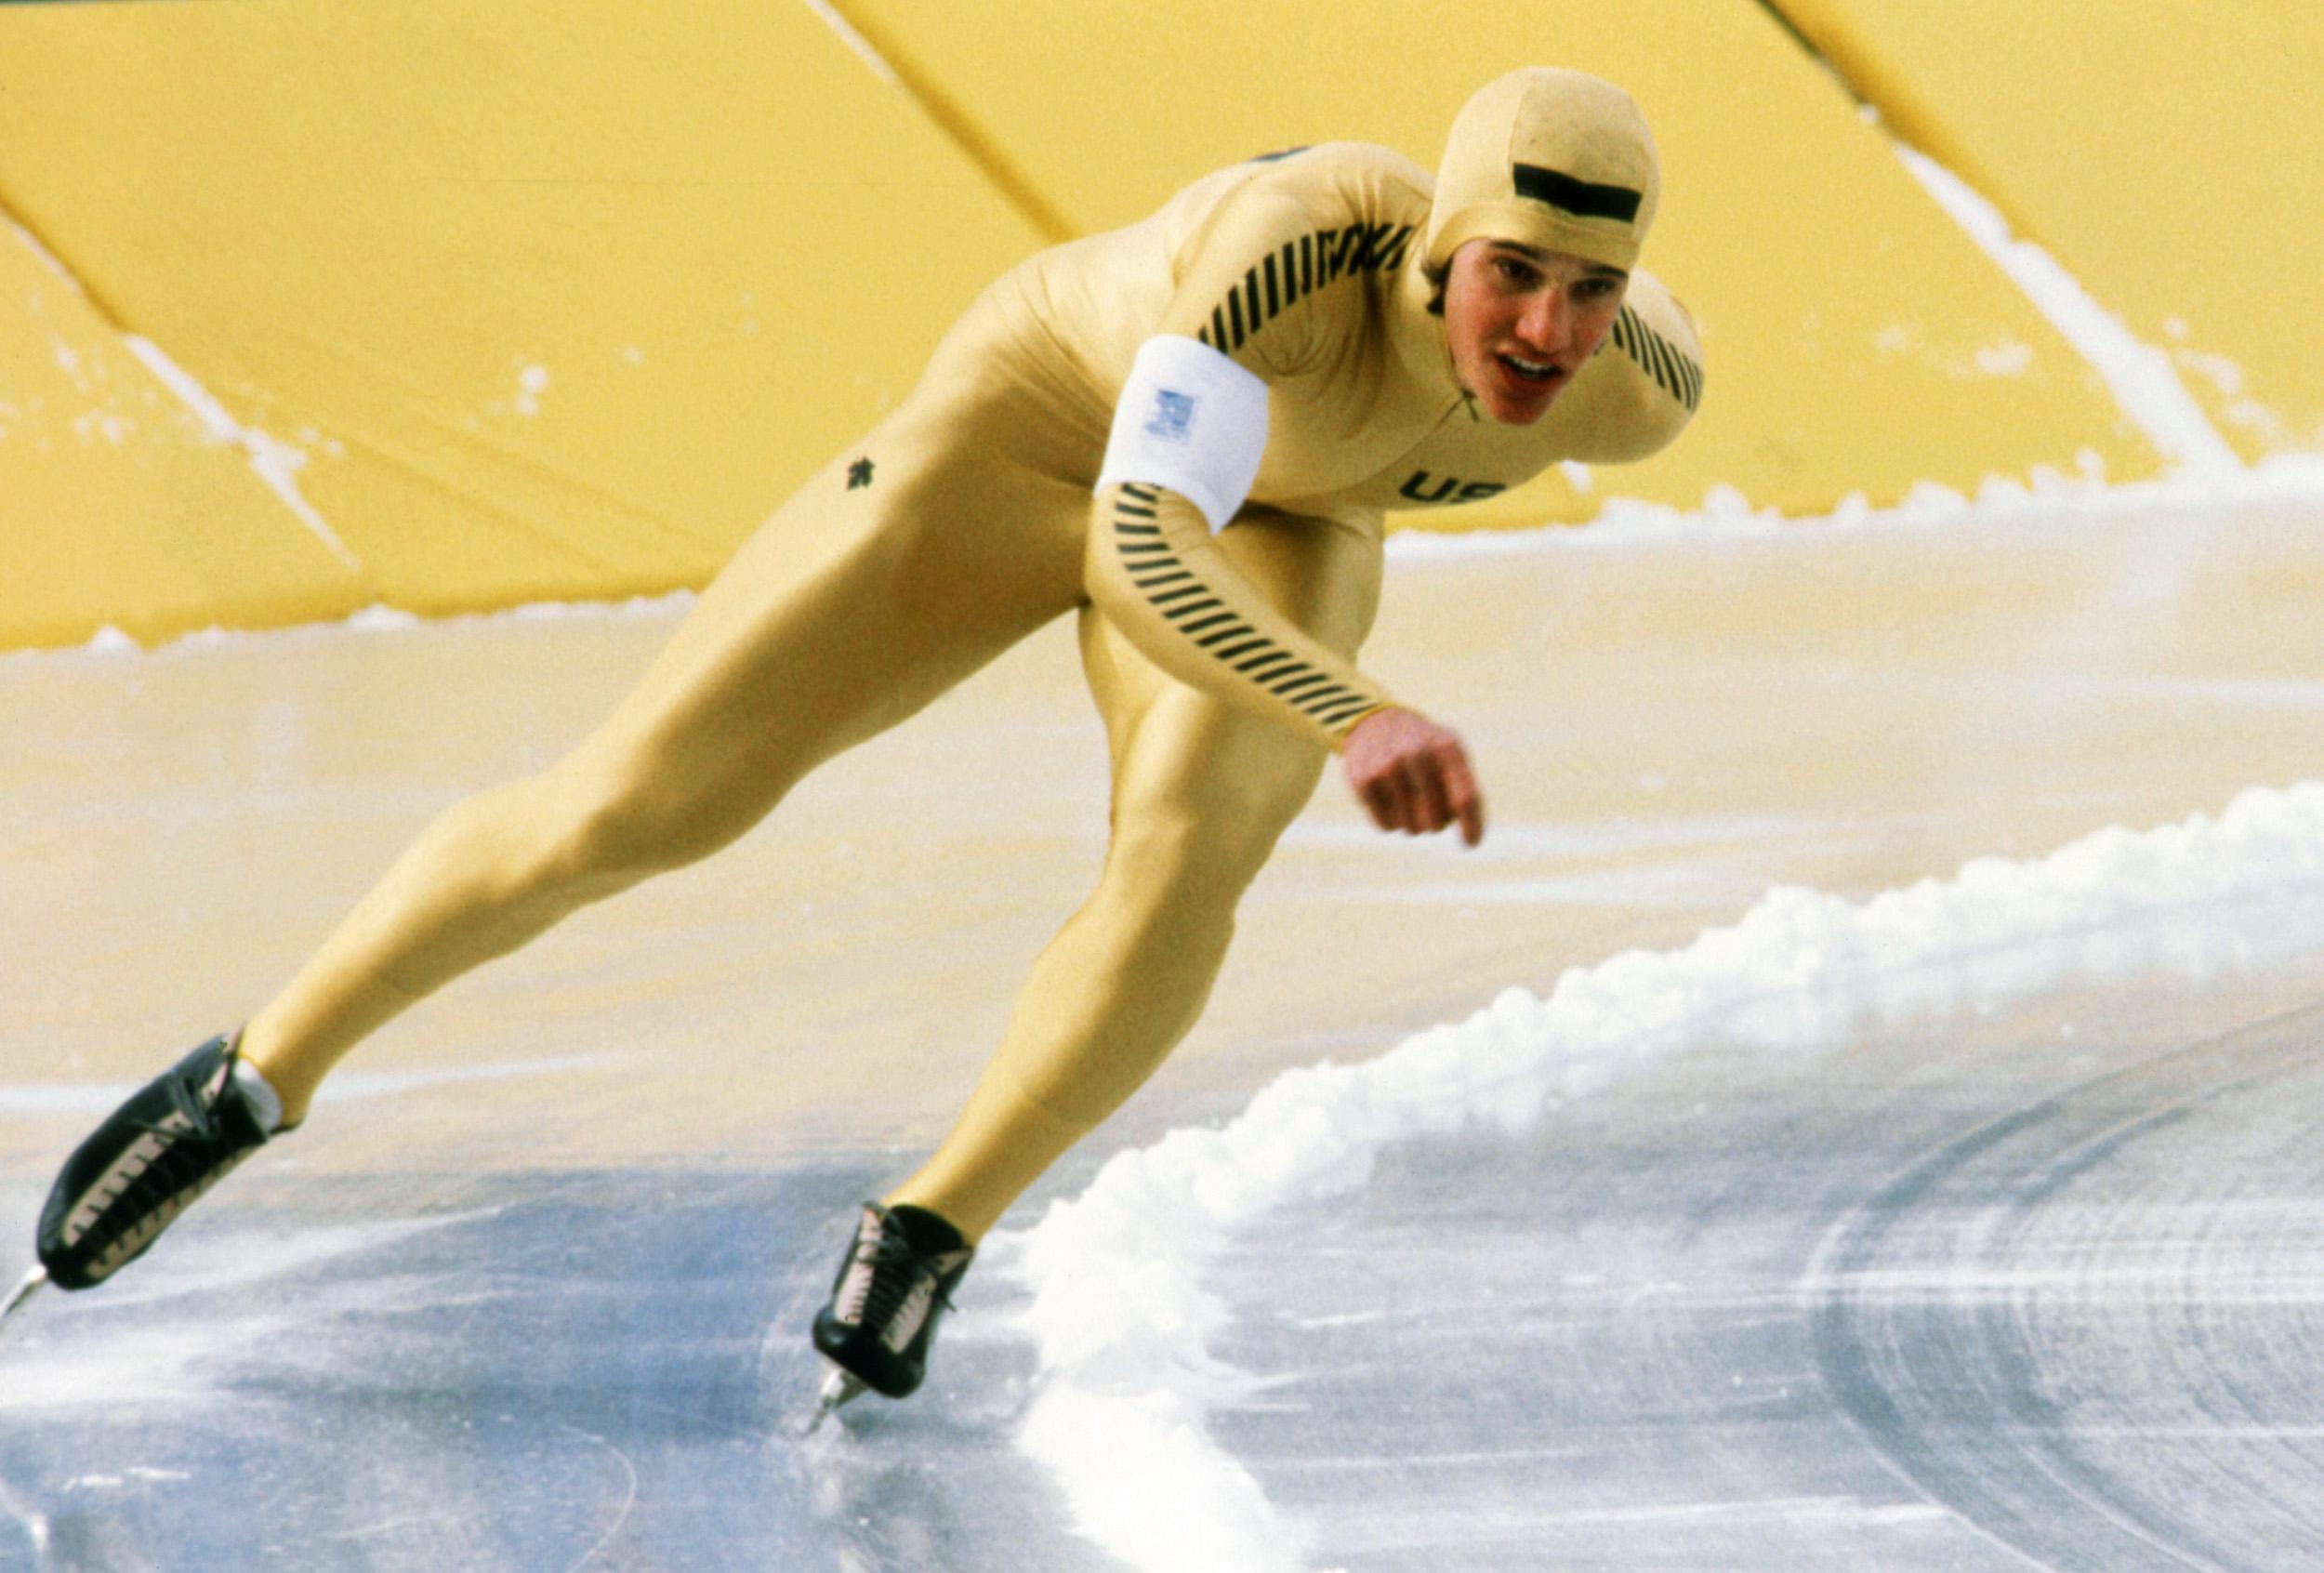 US speed skater Eric Heiden in a gold suit